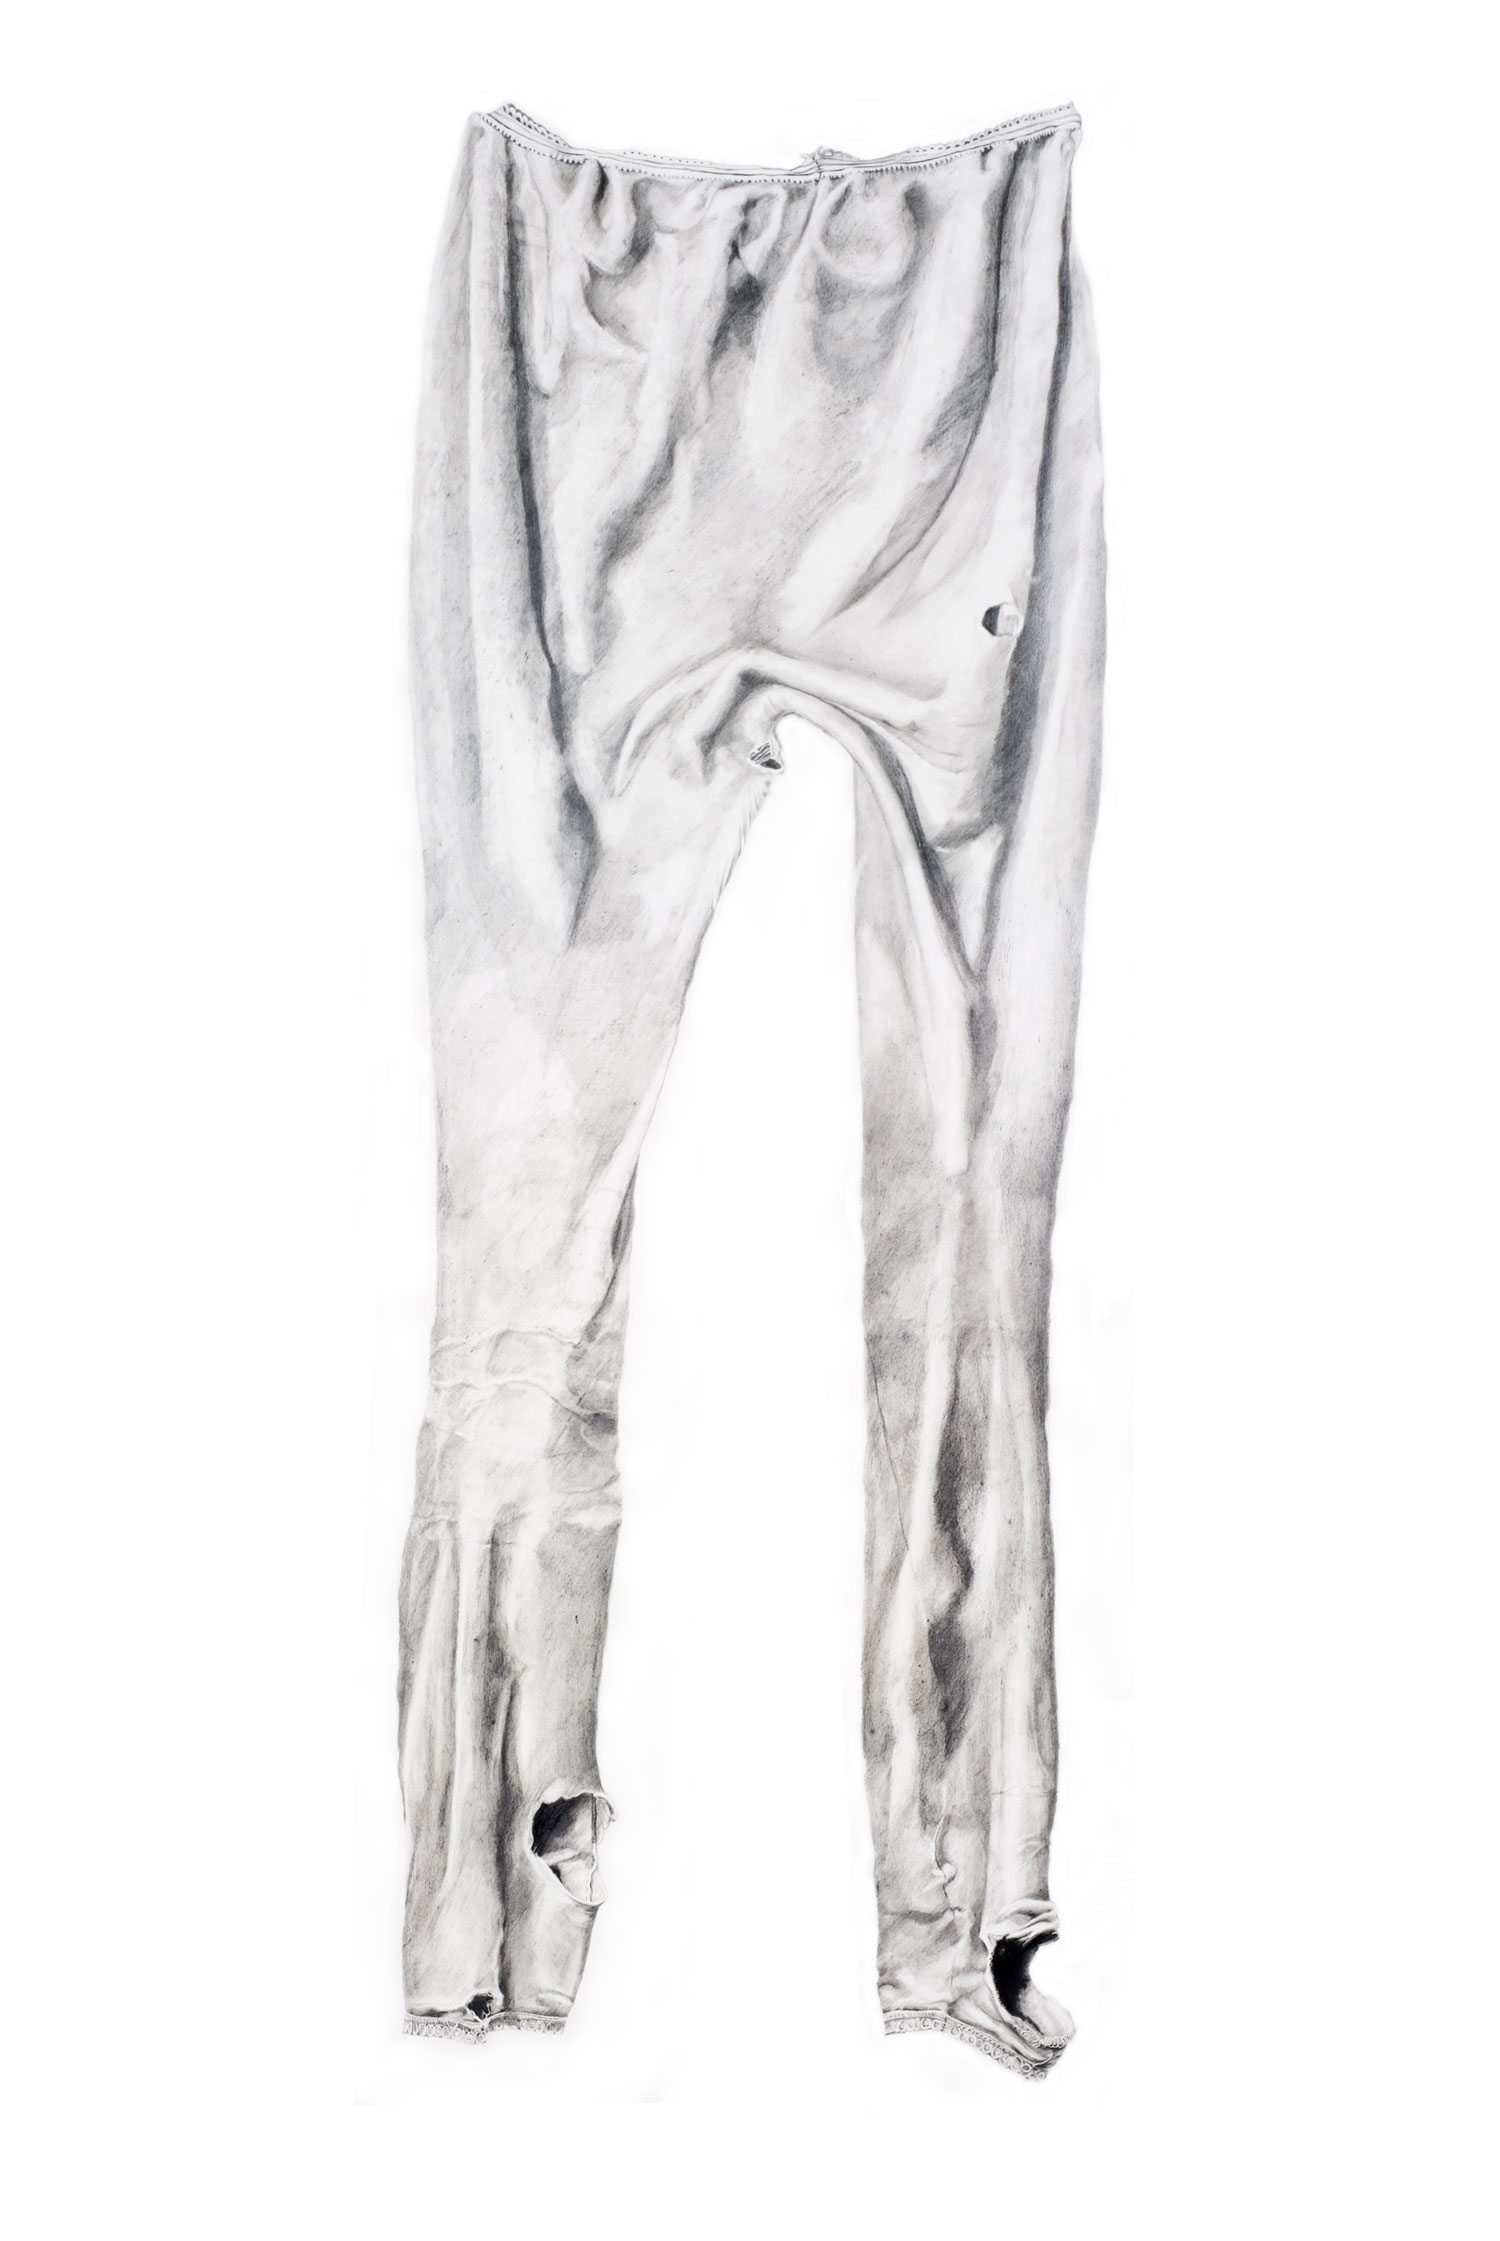 Long Johns   Materials:  Graphite on paper   Date of Creation:  2011